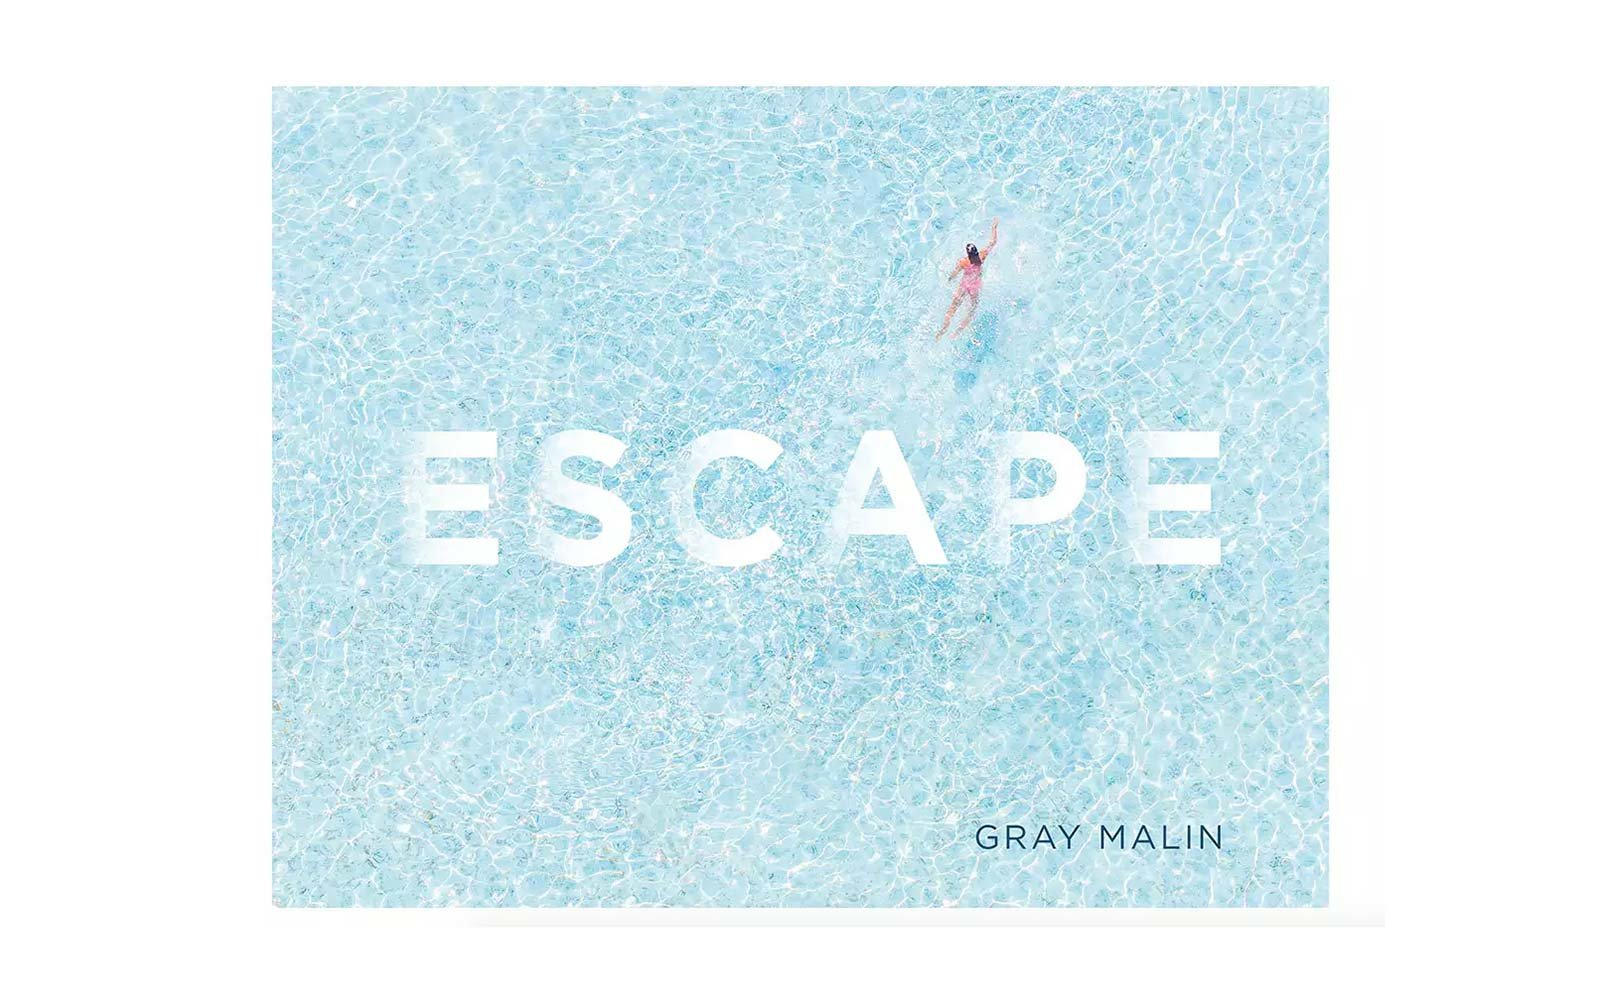 Gray Malin Escape photography coffee table book